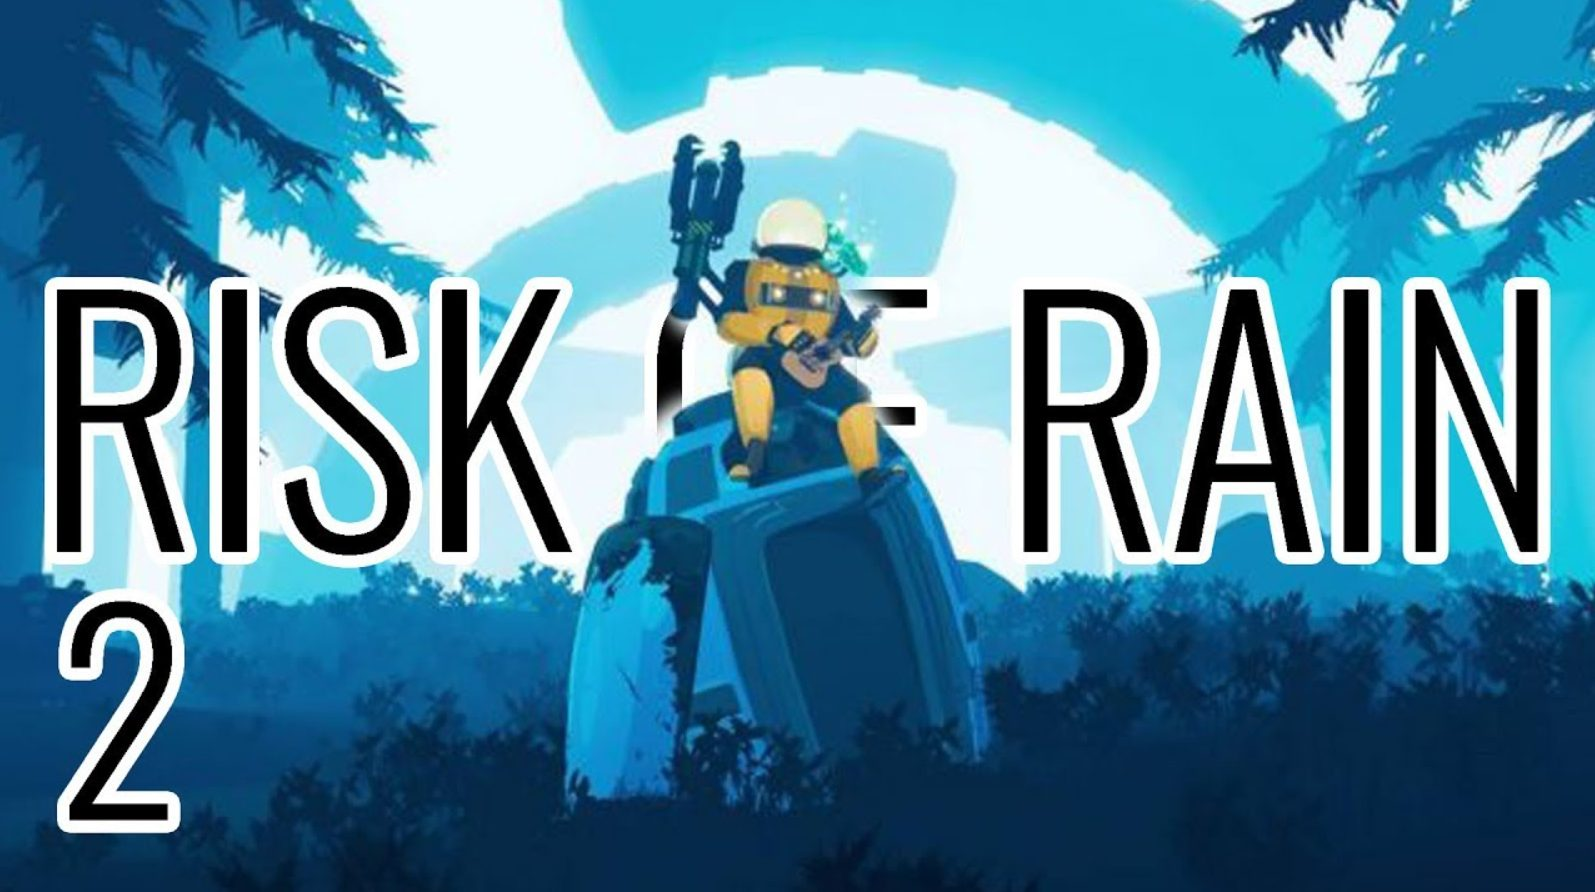 RISK OF RAIN 2 Free PC Game Download Full Version